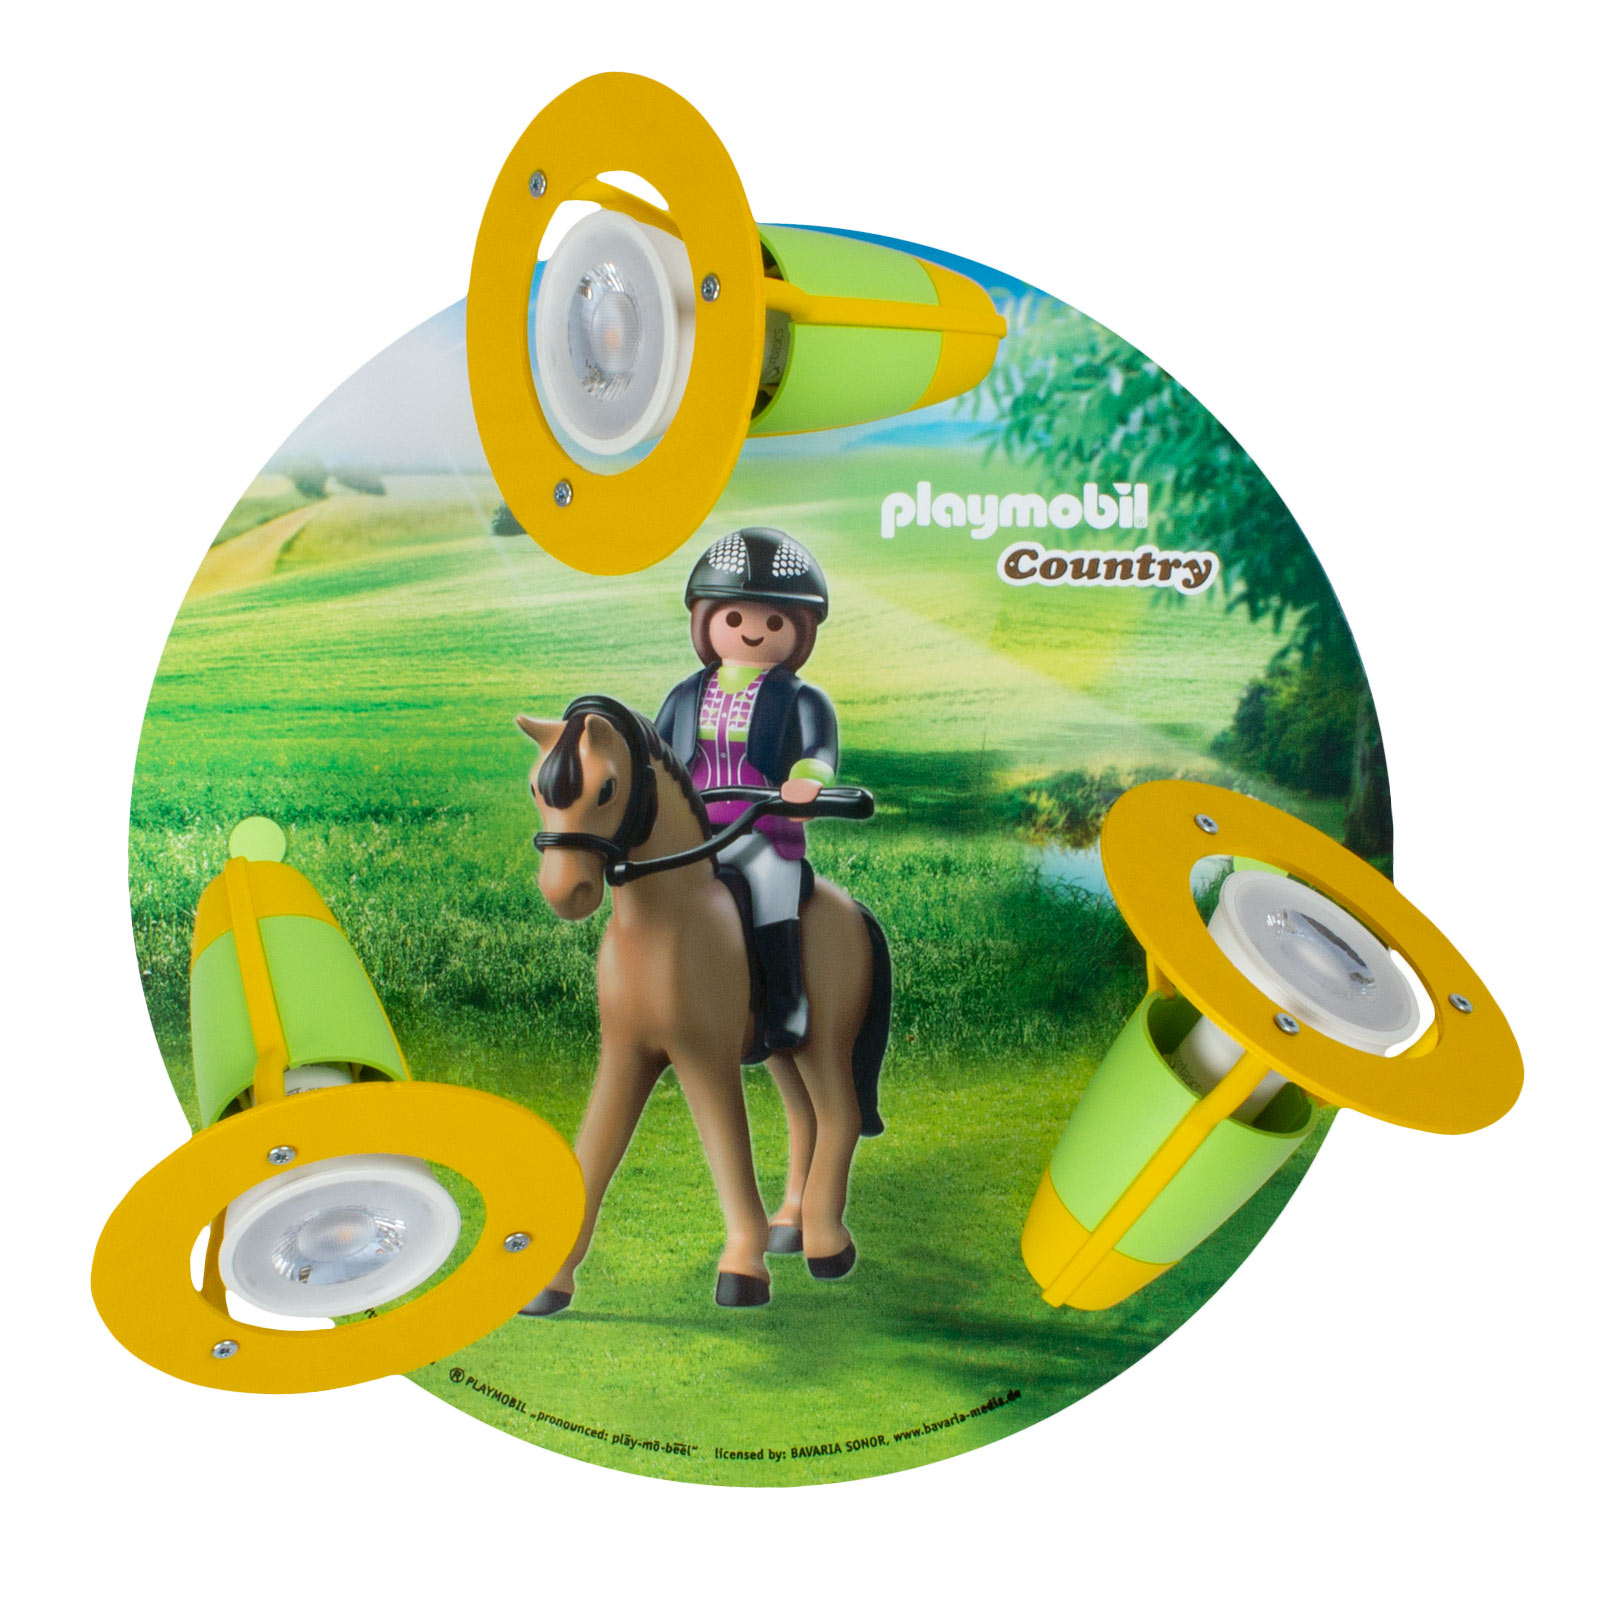 Plafondlamp 3 per spot PLAYMOBIL Country